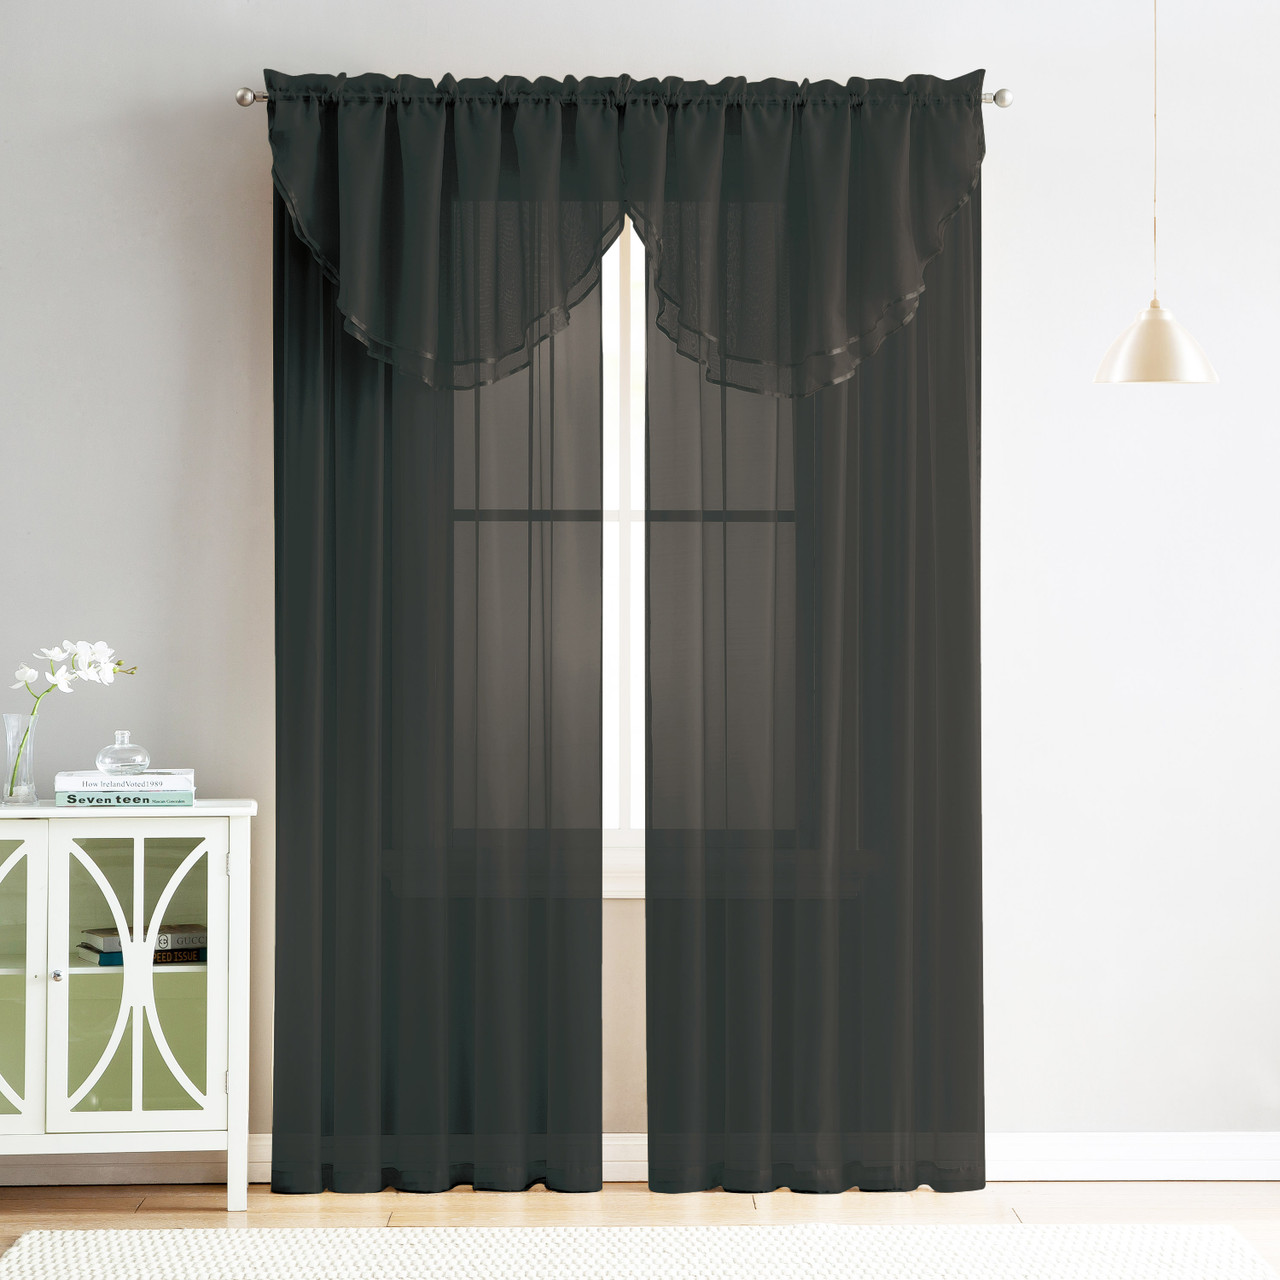 4 Piece Sheer Window Curtain Set For Living Room Dining Room Bay Windows 2 Voile Valance Curtains And 2 Panels 90 In Long Black